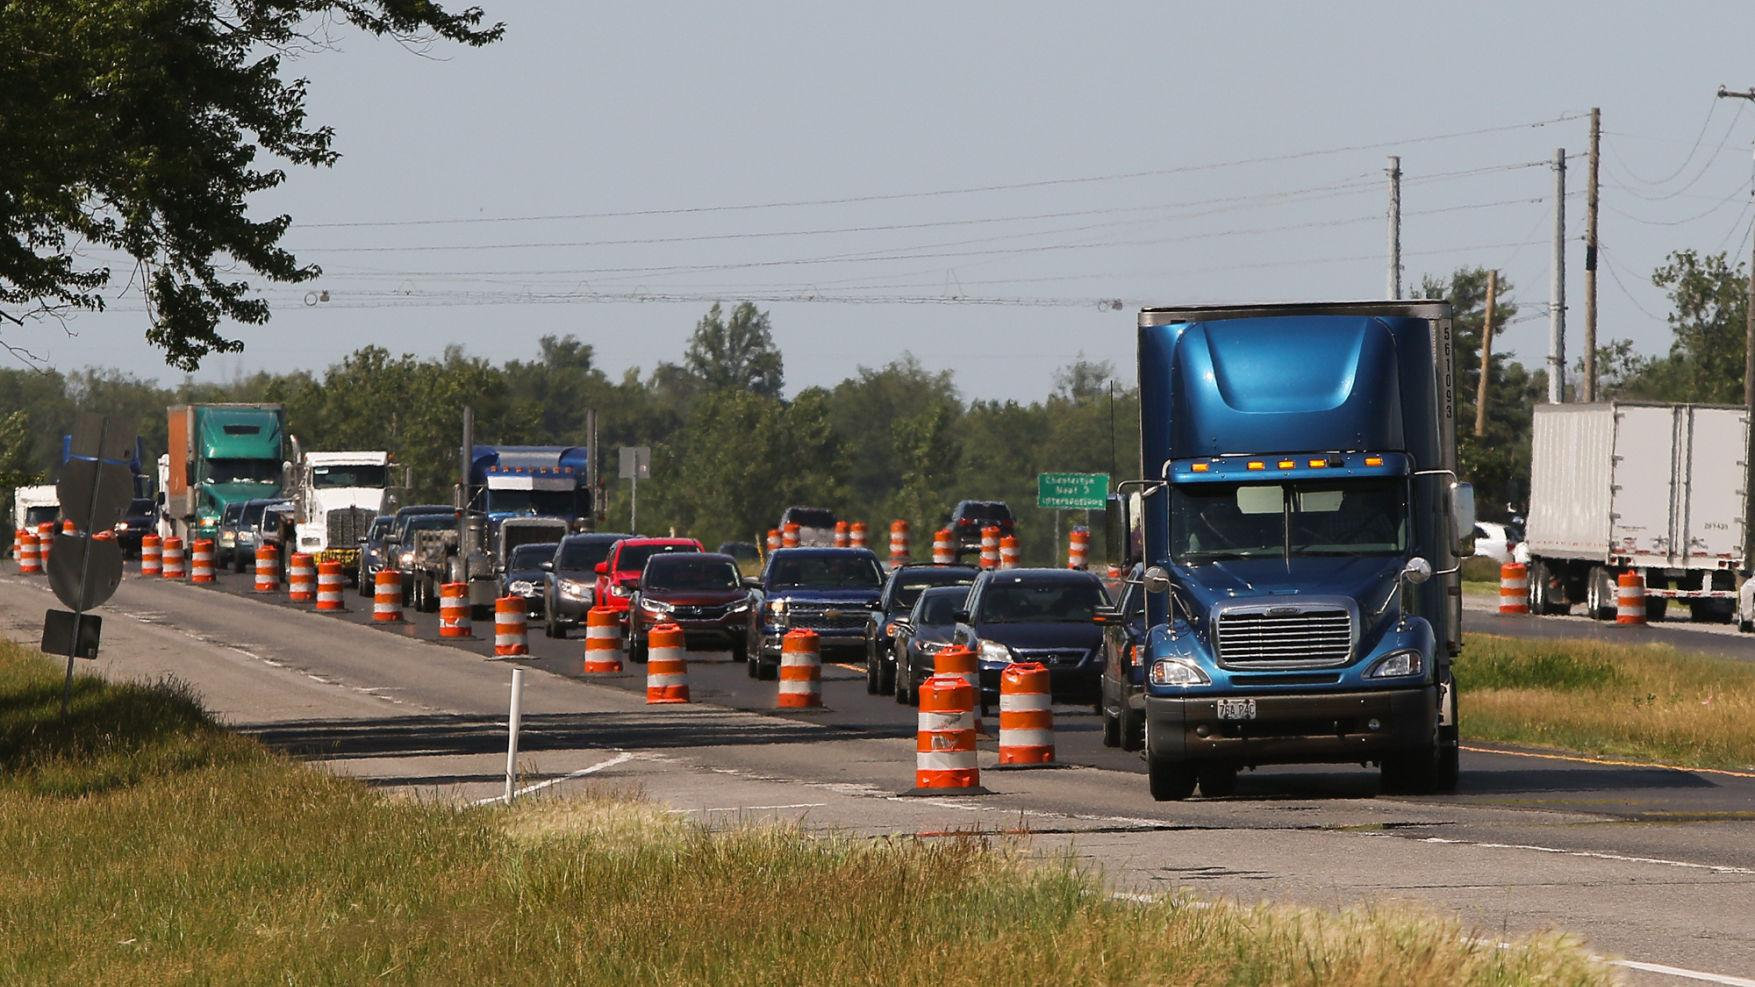 Lowest fuel costs in 11 years means record July 4 travel